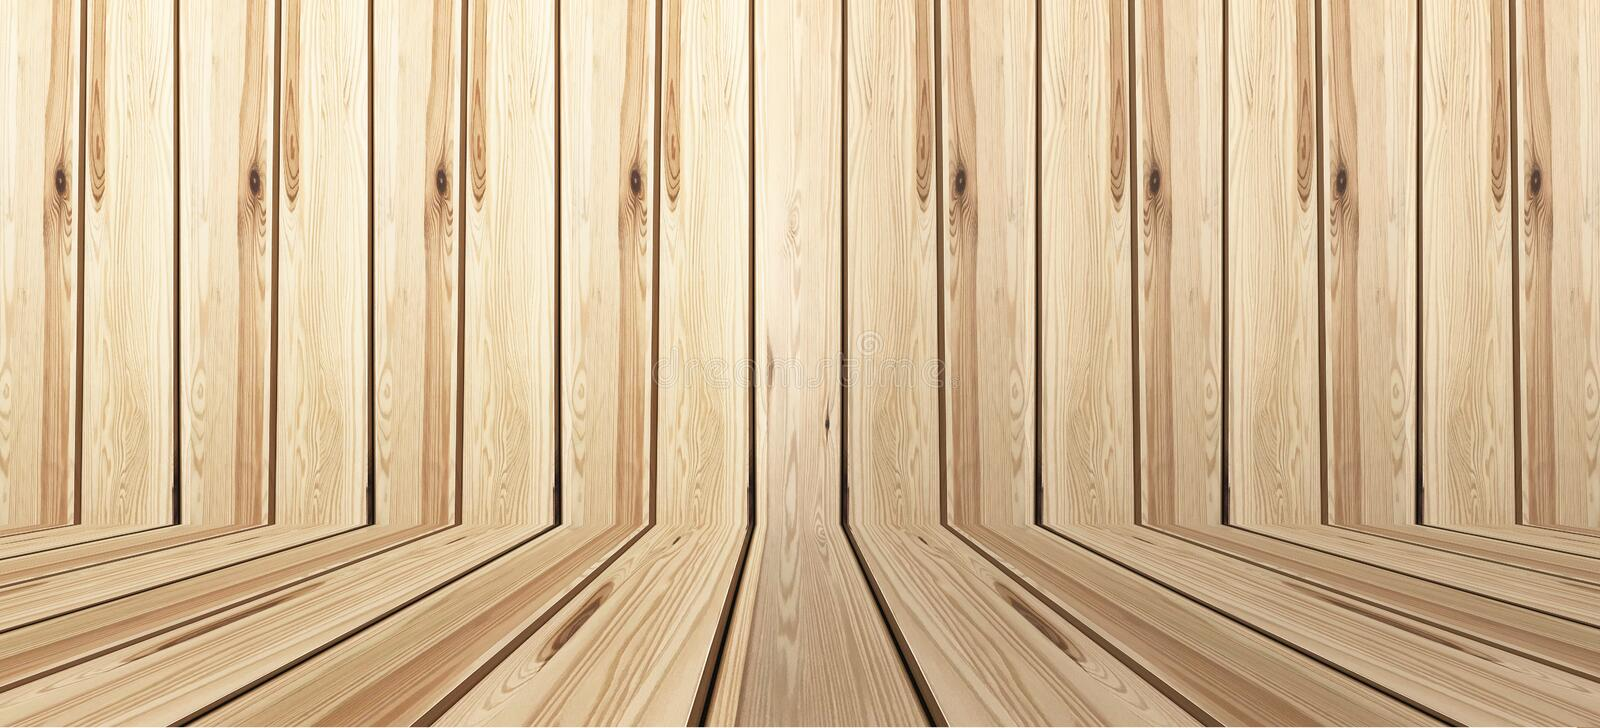 Perspective wood floor wall texture background ,timber wood wall.  stock photos